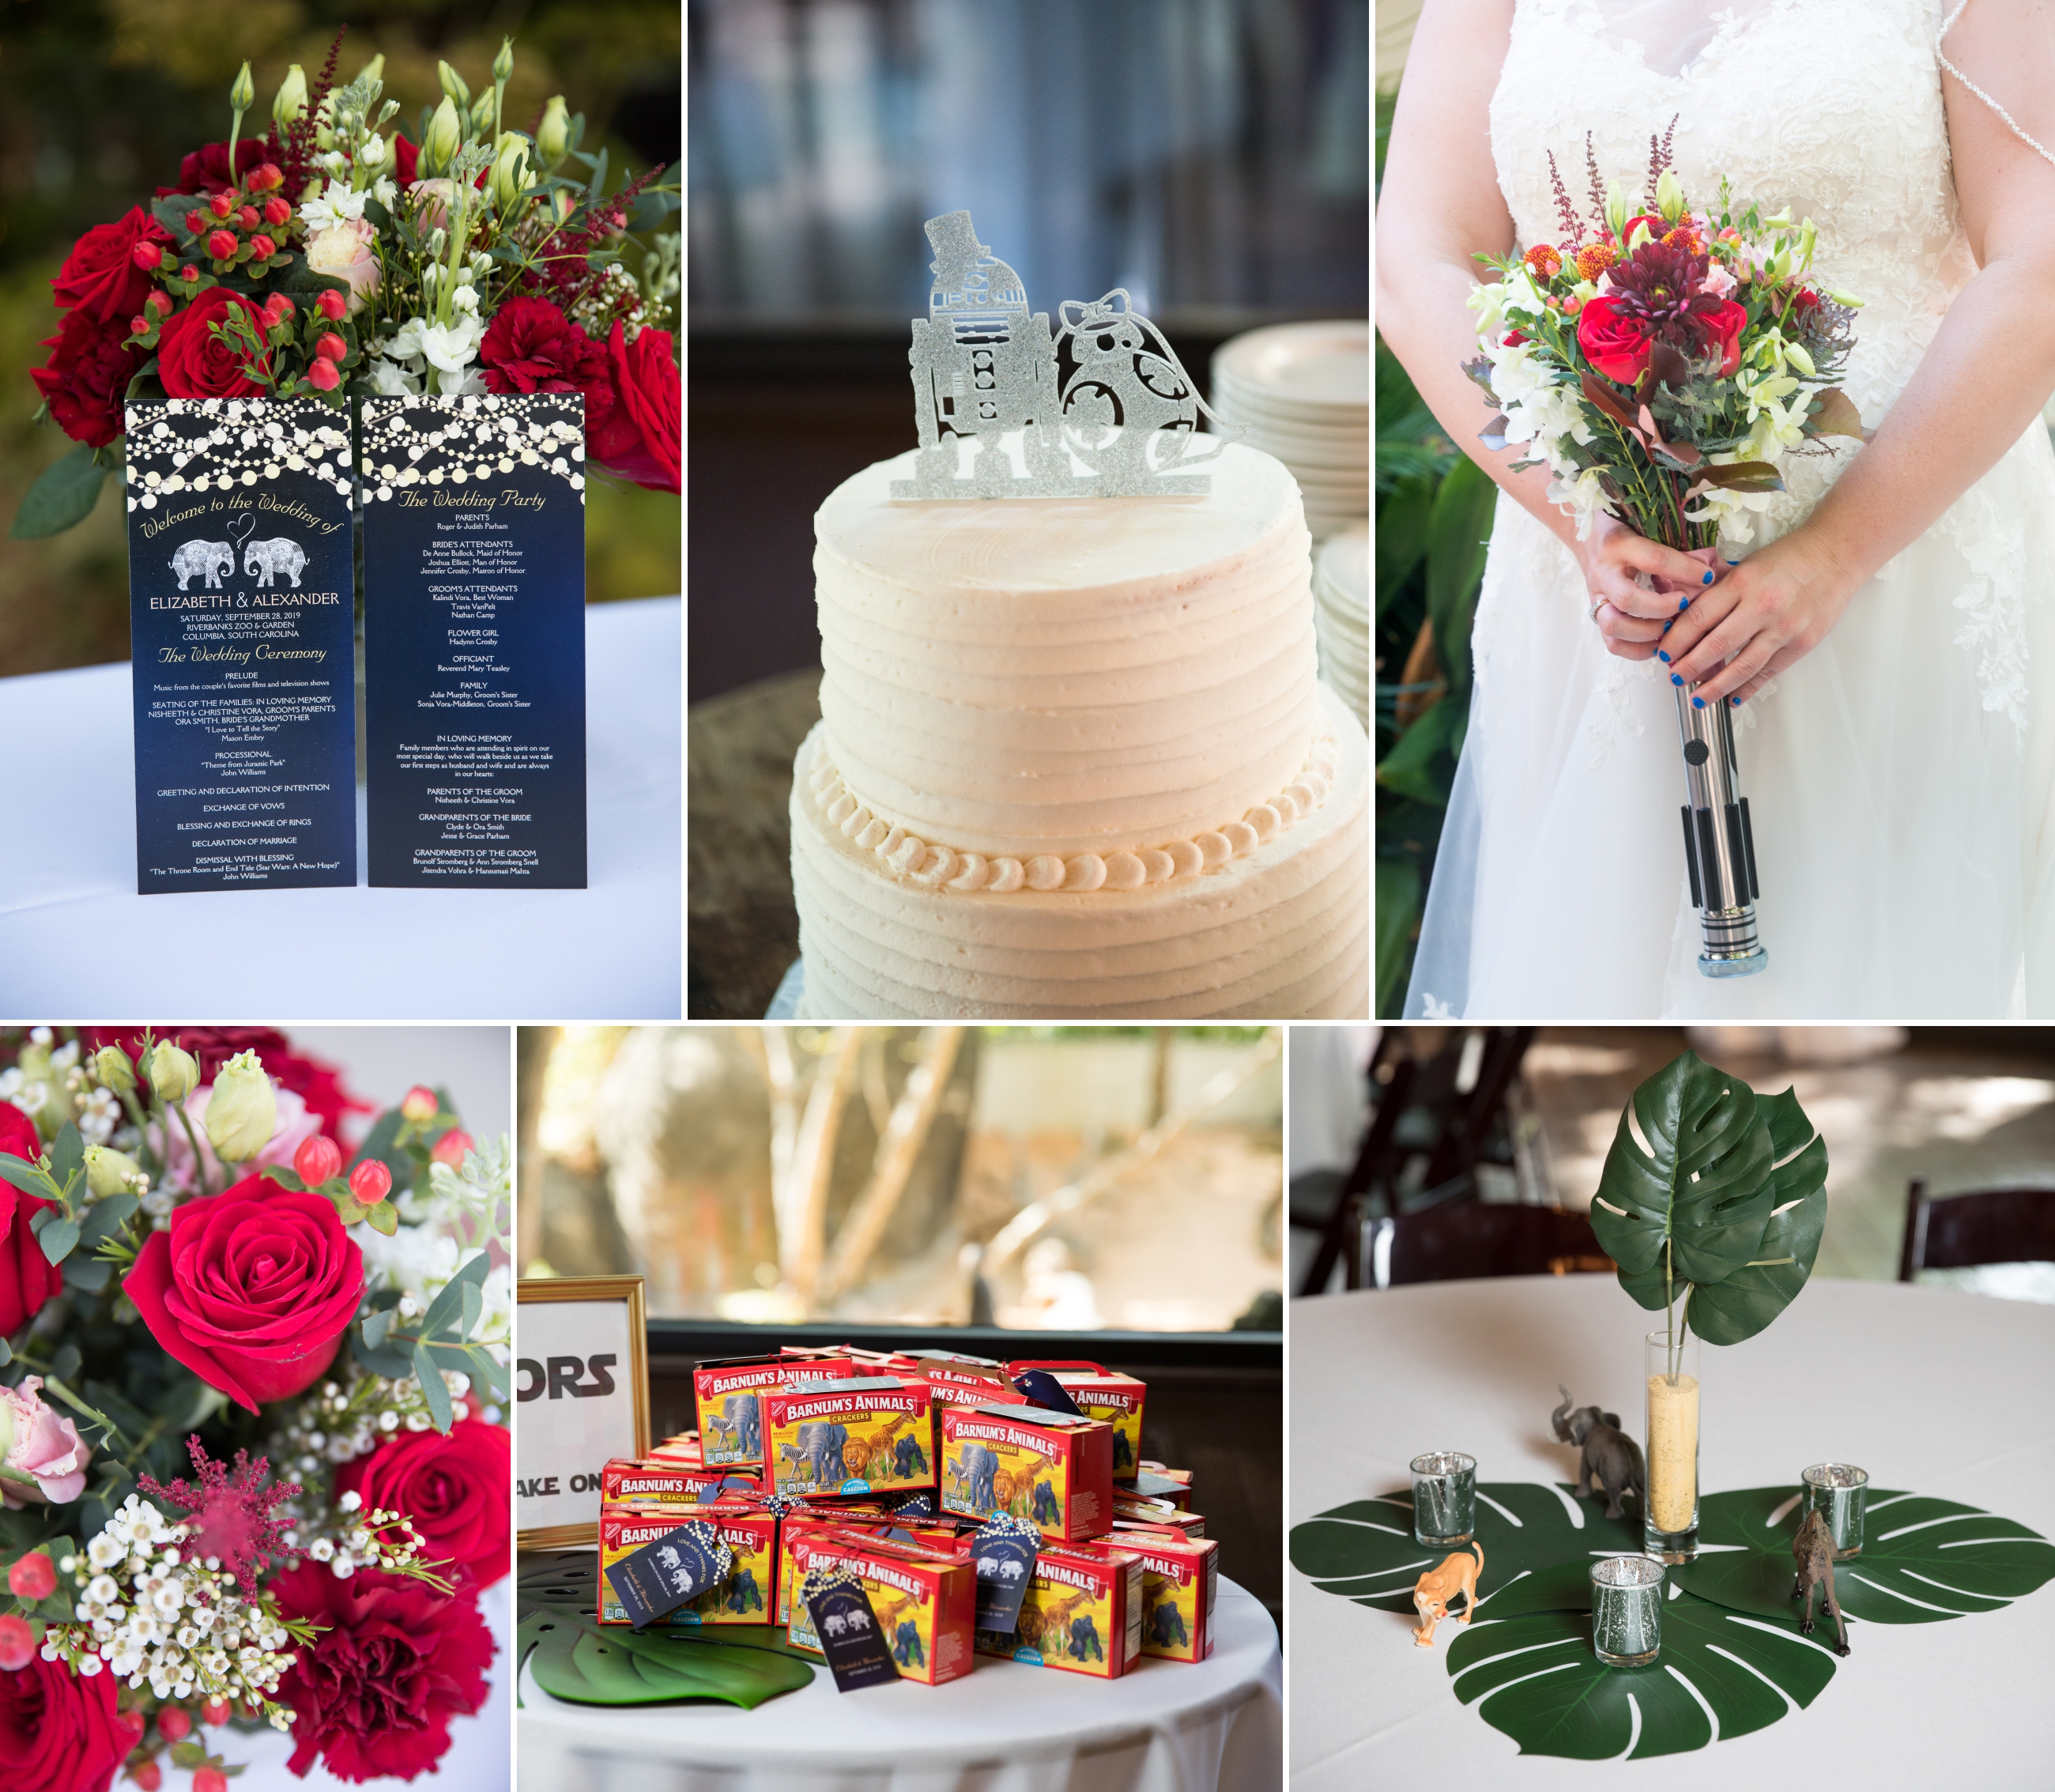 rIVERBANKS Zoo wedding